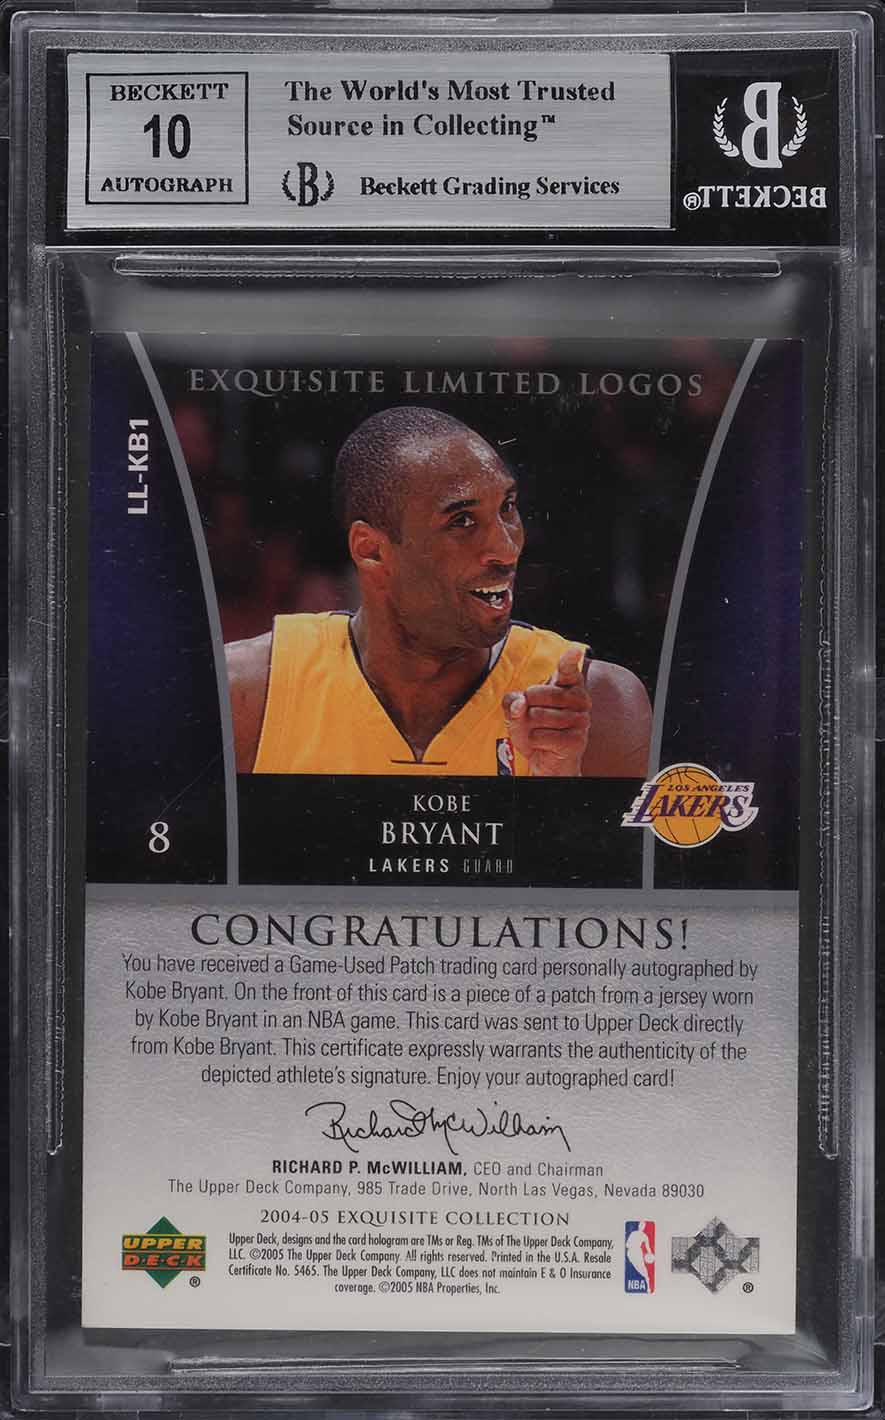 2004 Exquisite Collection Limited Logos Kobe Bryant PATCH AUTO /50 BGS 9 (PWCC) - Image 2